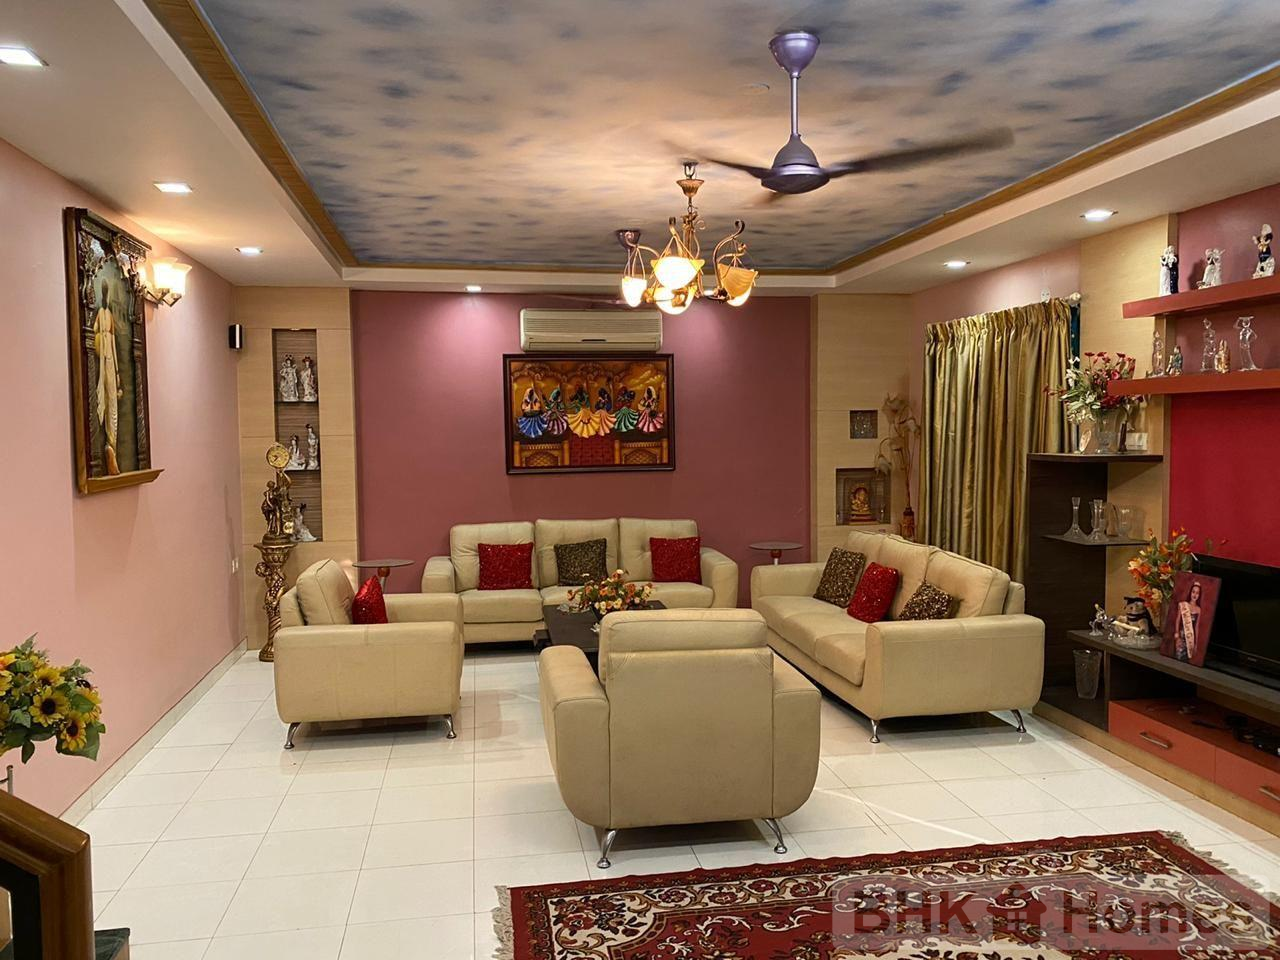 4 BHK Residential Apartment for Sale in Viman Nagar